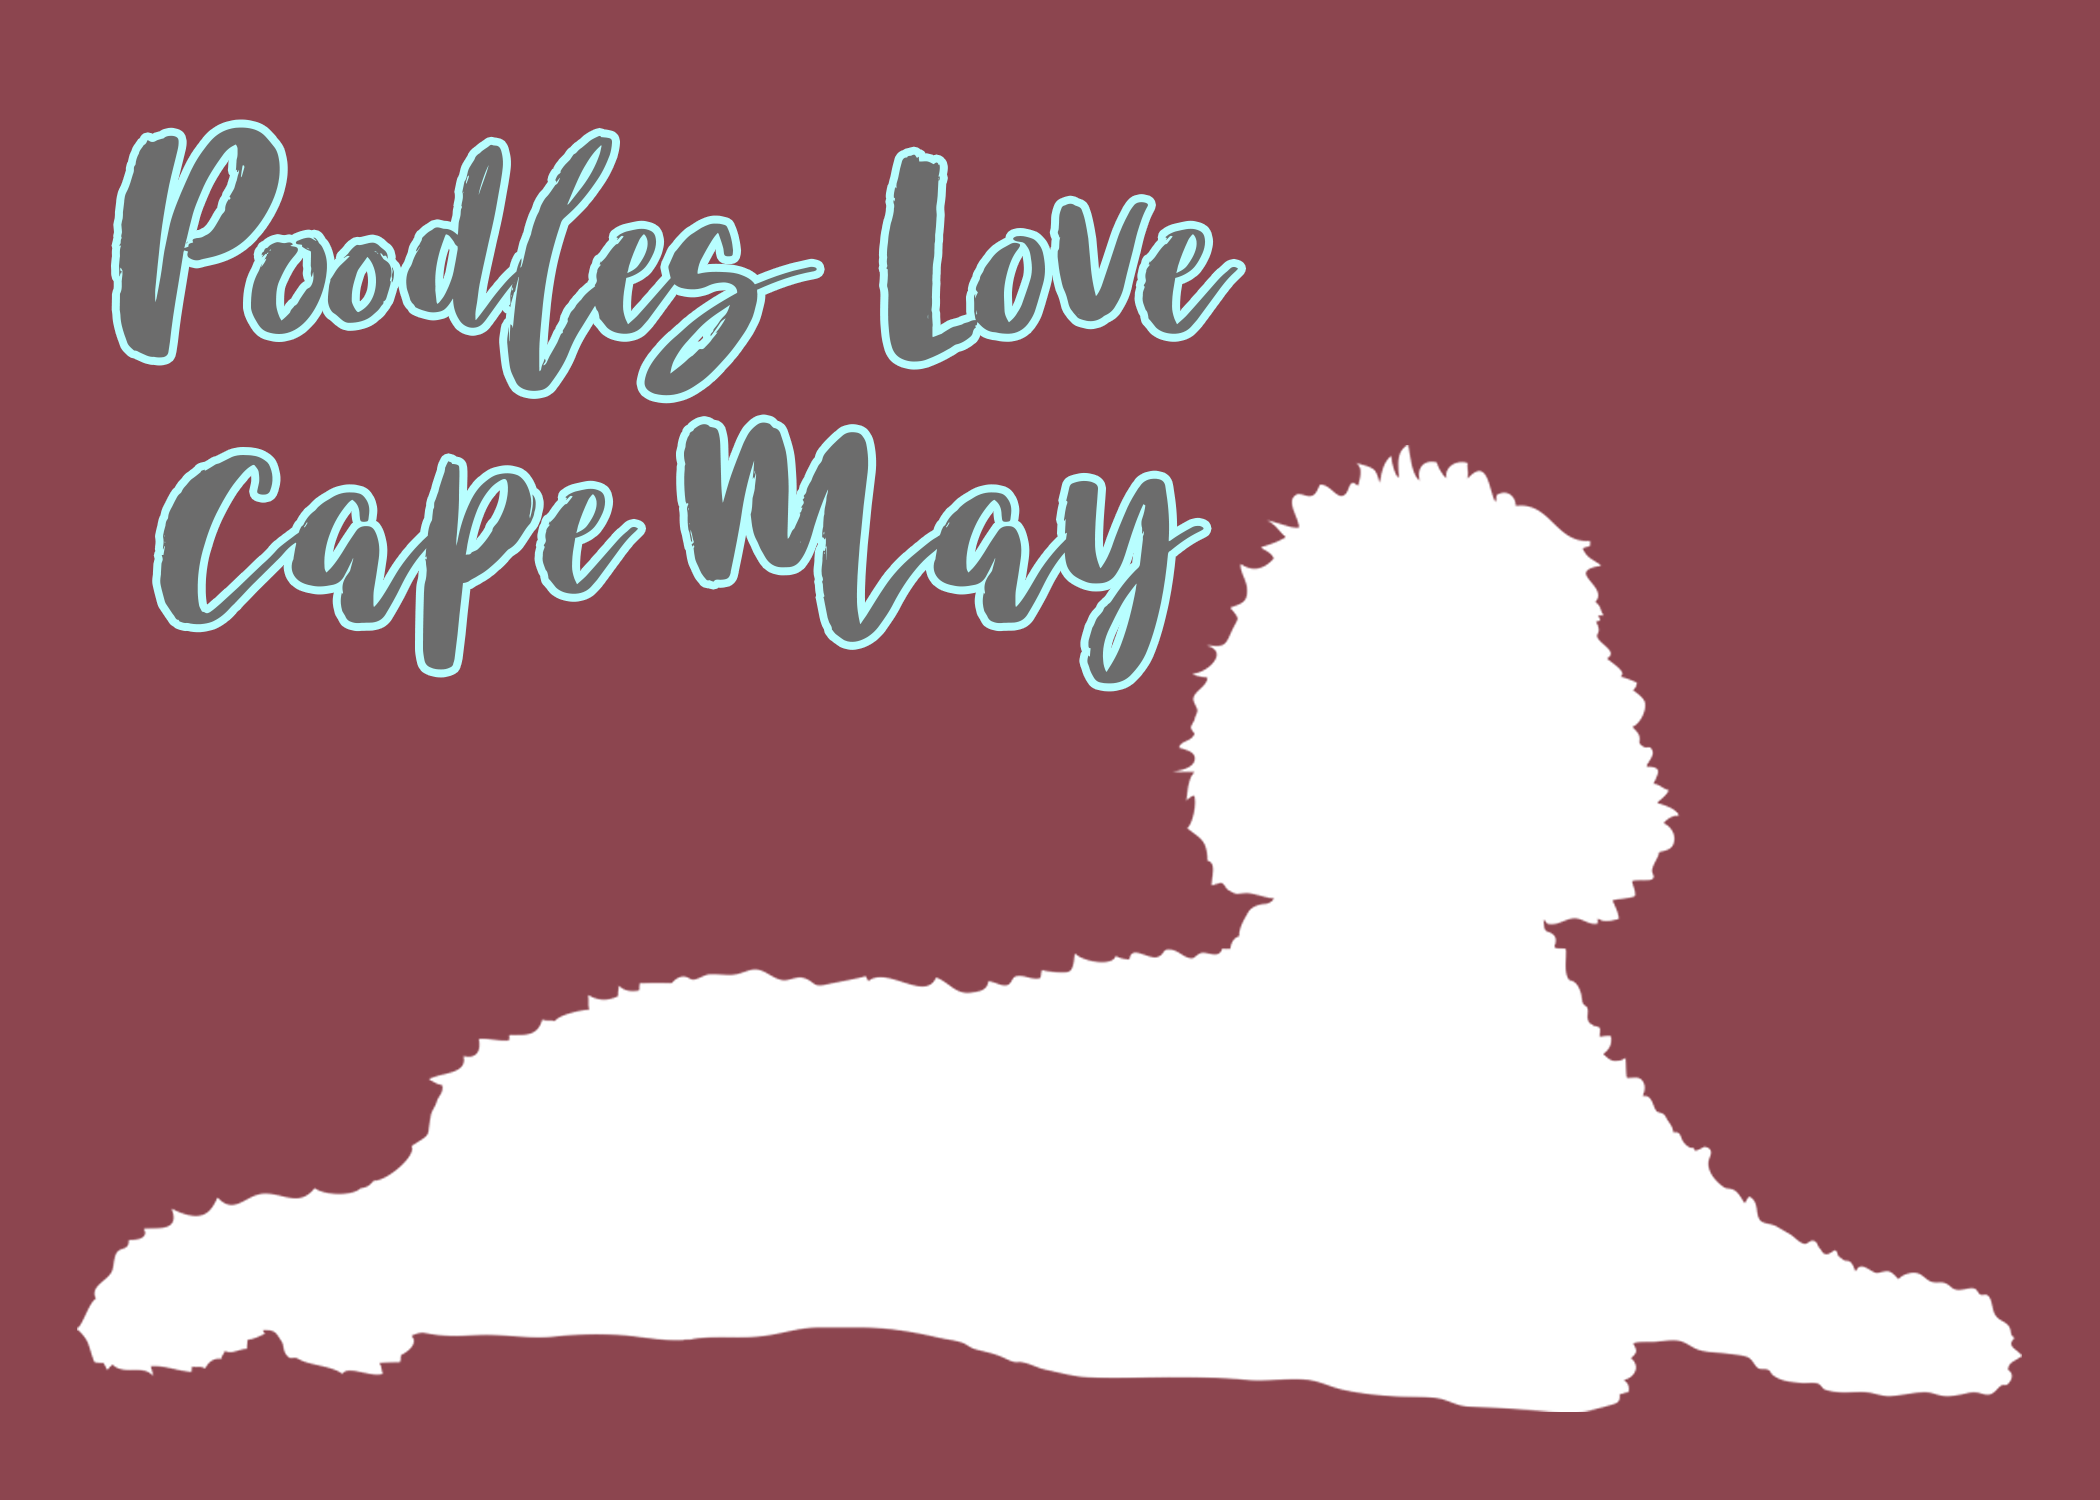 ABS_Dogslove_0007_Poodles--Love-Cape-May.png